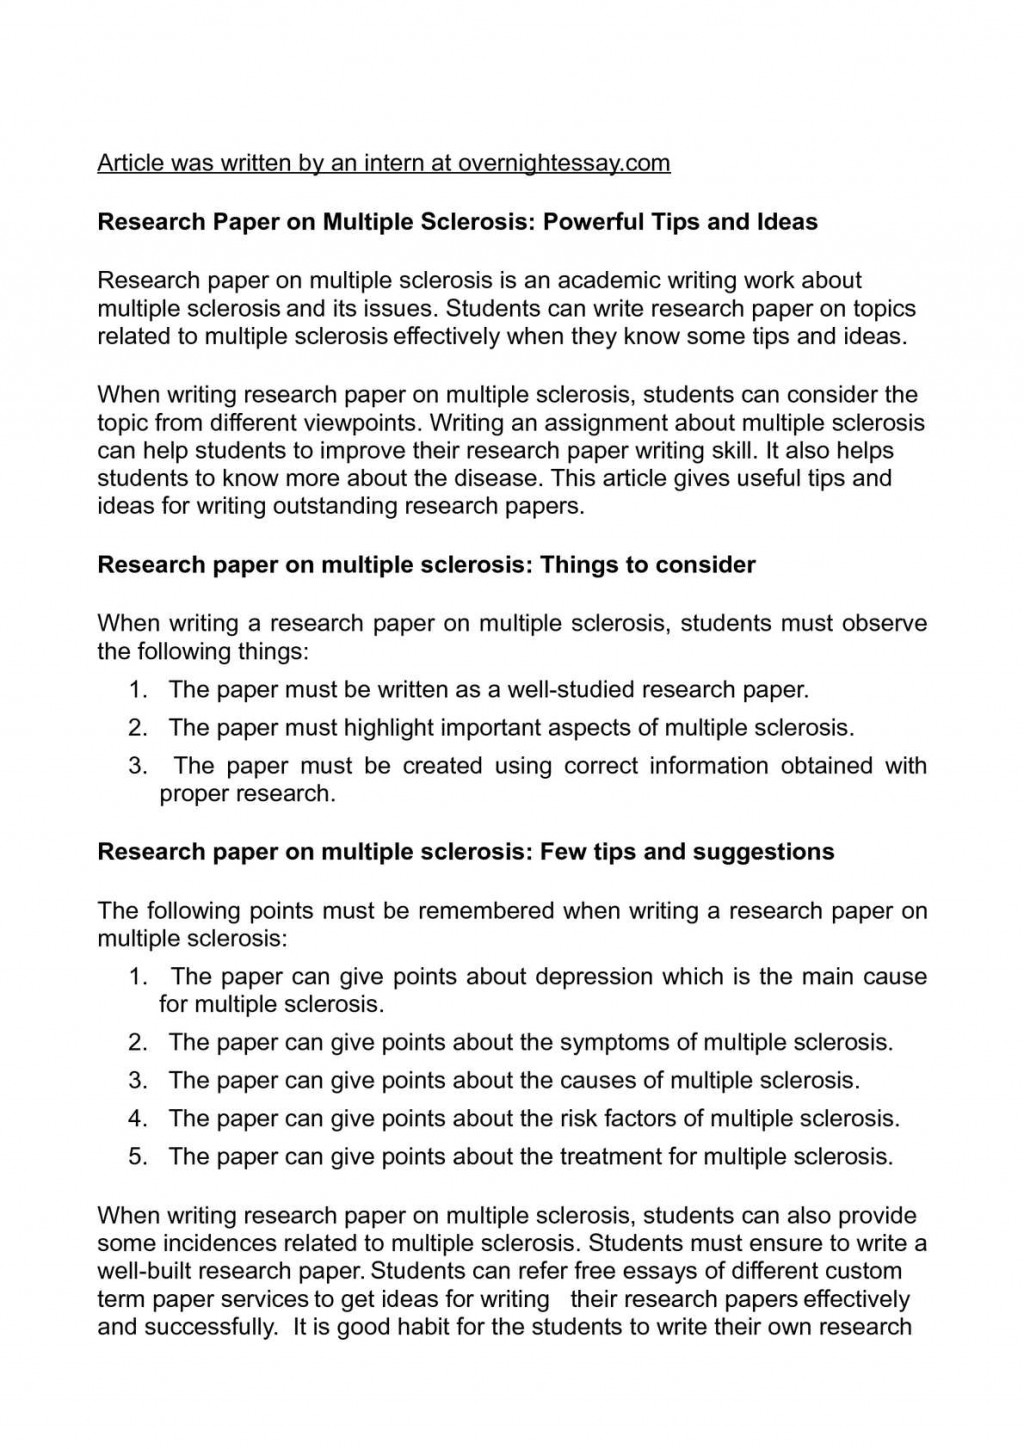 015 P1 Research Paper Write Frightening Papers How To A History Introduction Fast Youtube For Money Large